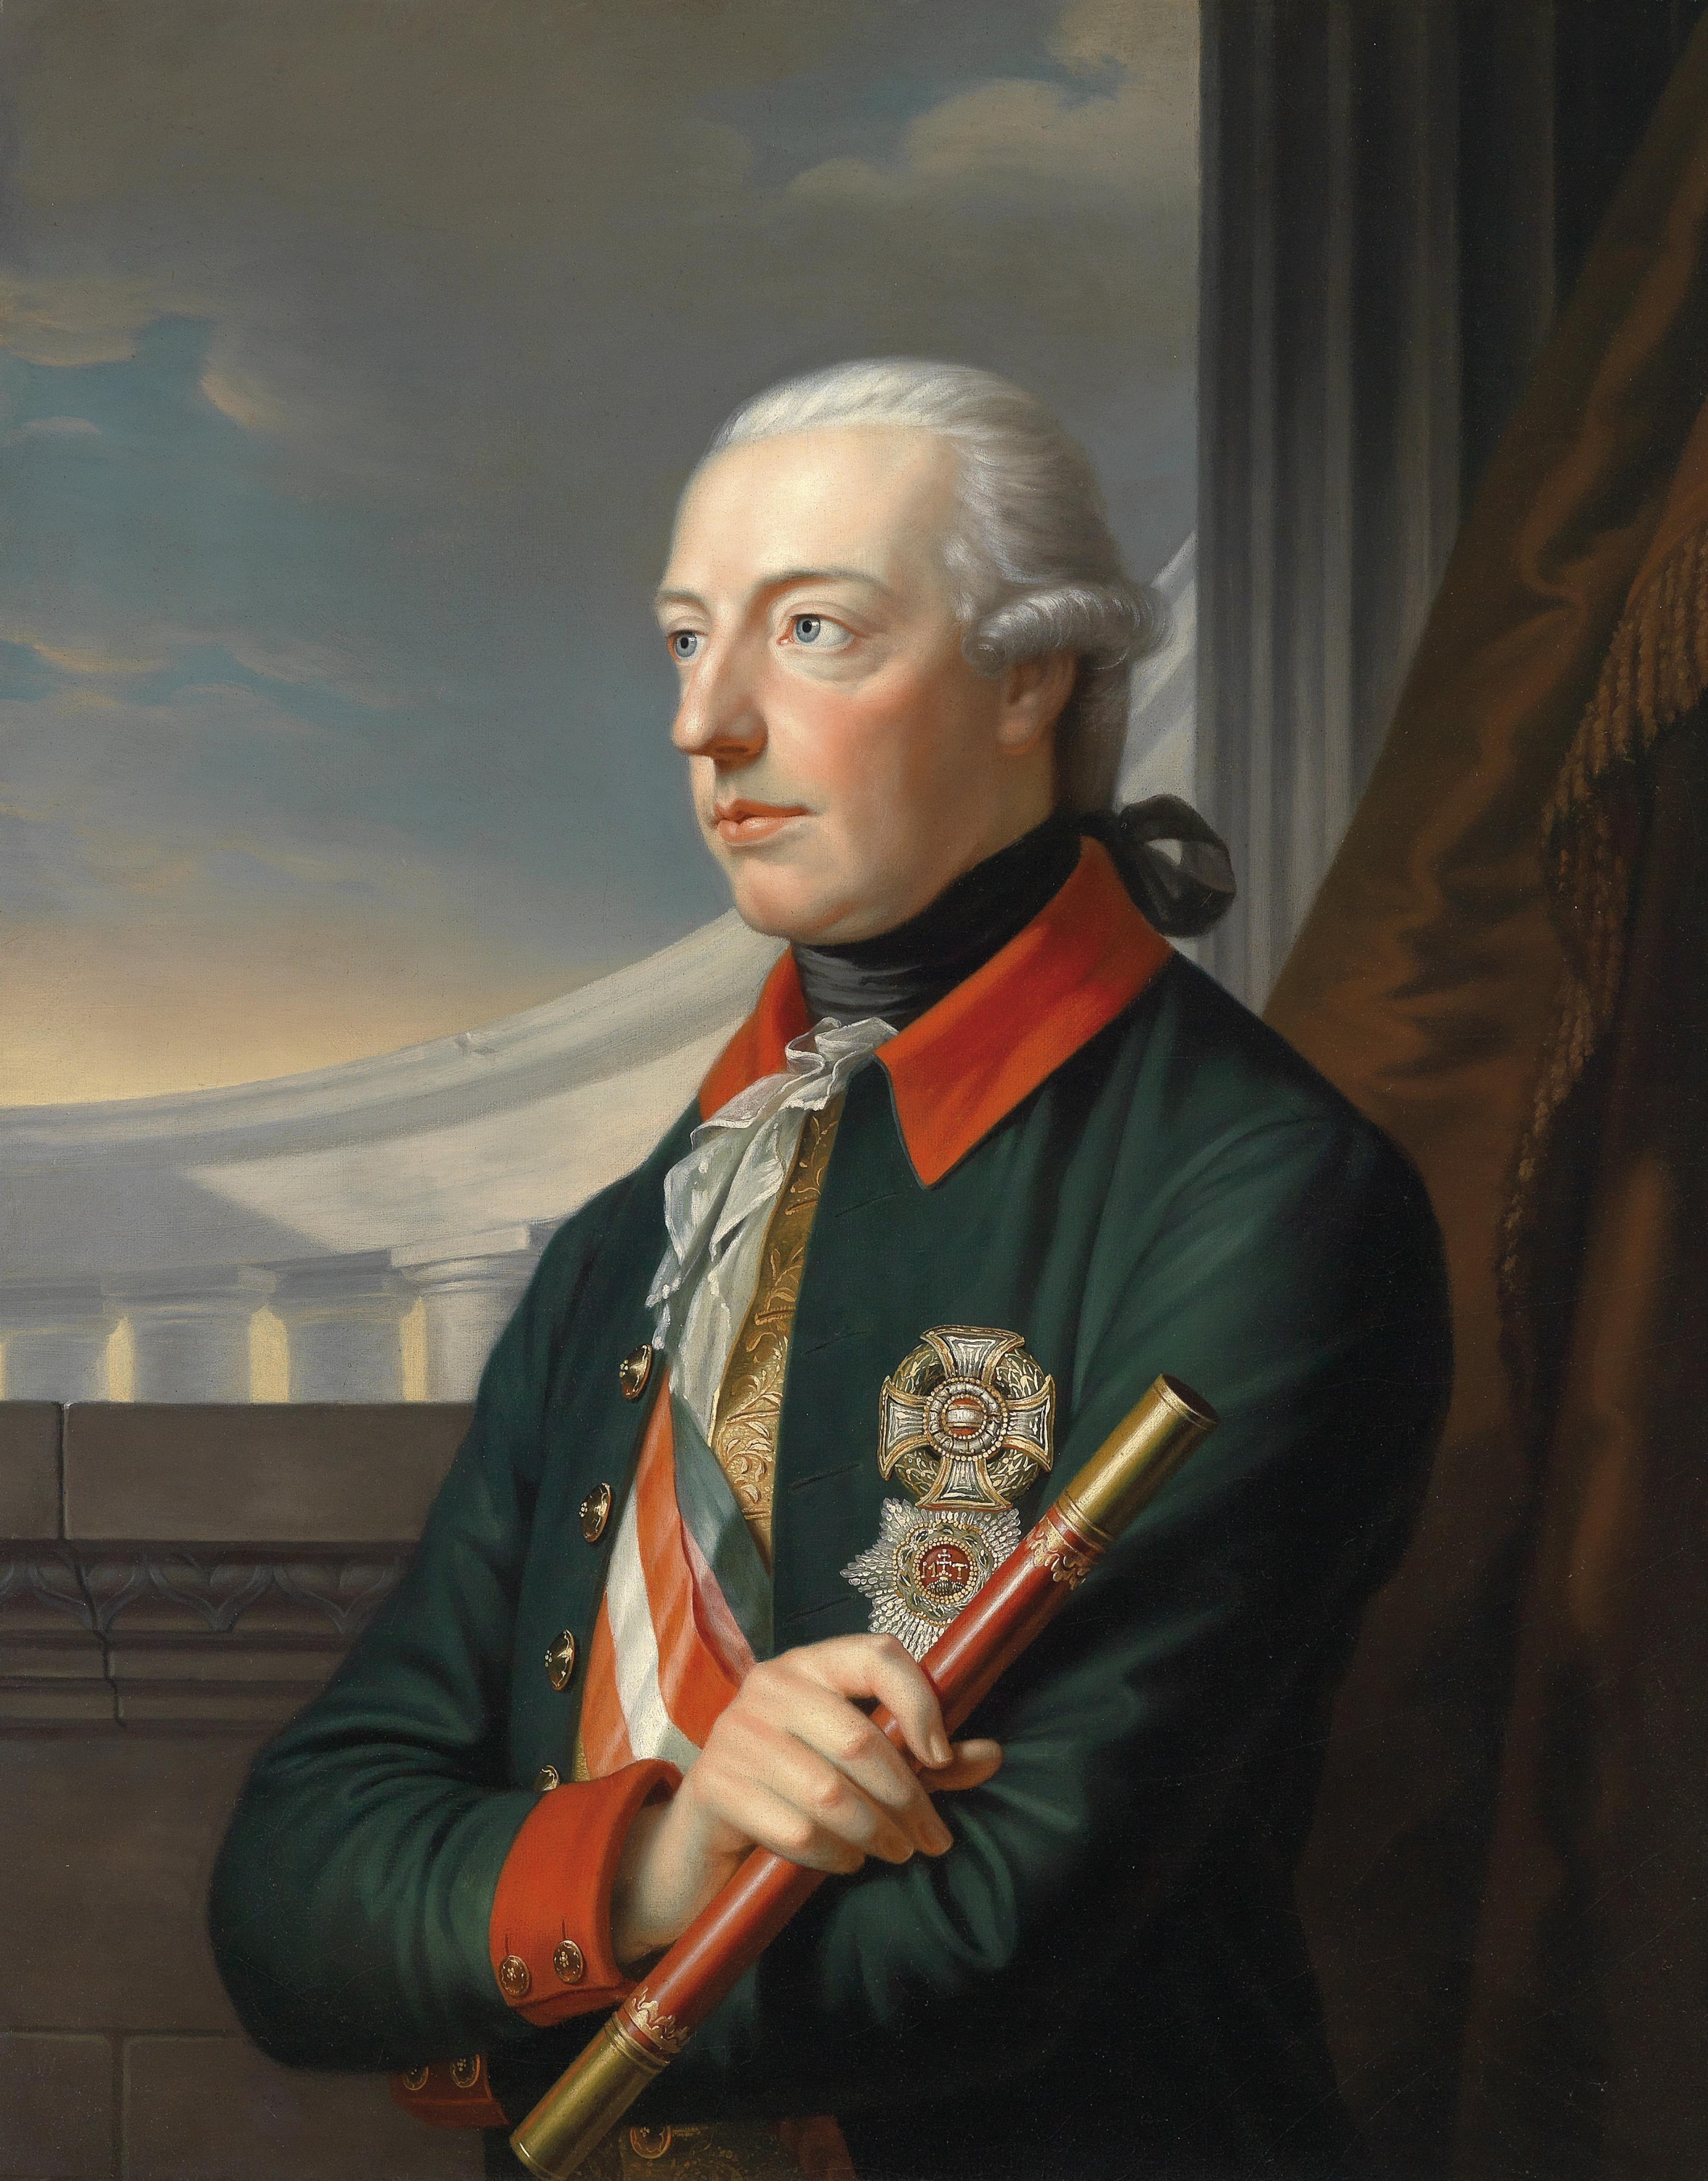 the role of the austrian emperor joseph ii in the career of wa mozart